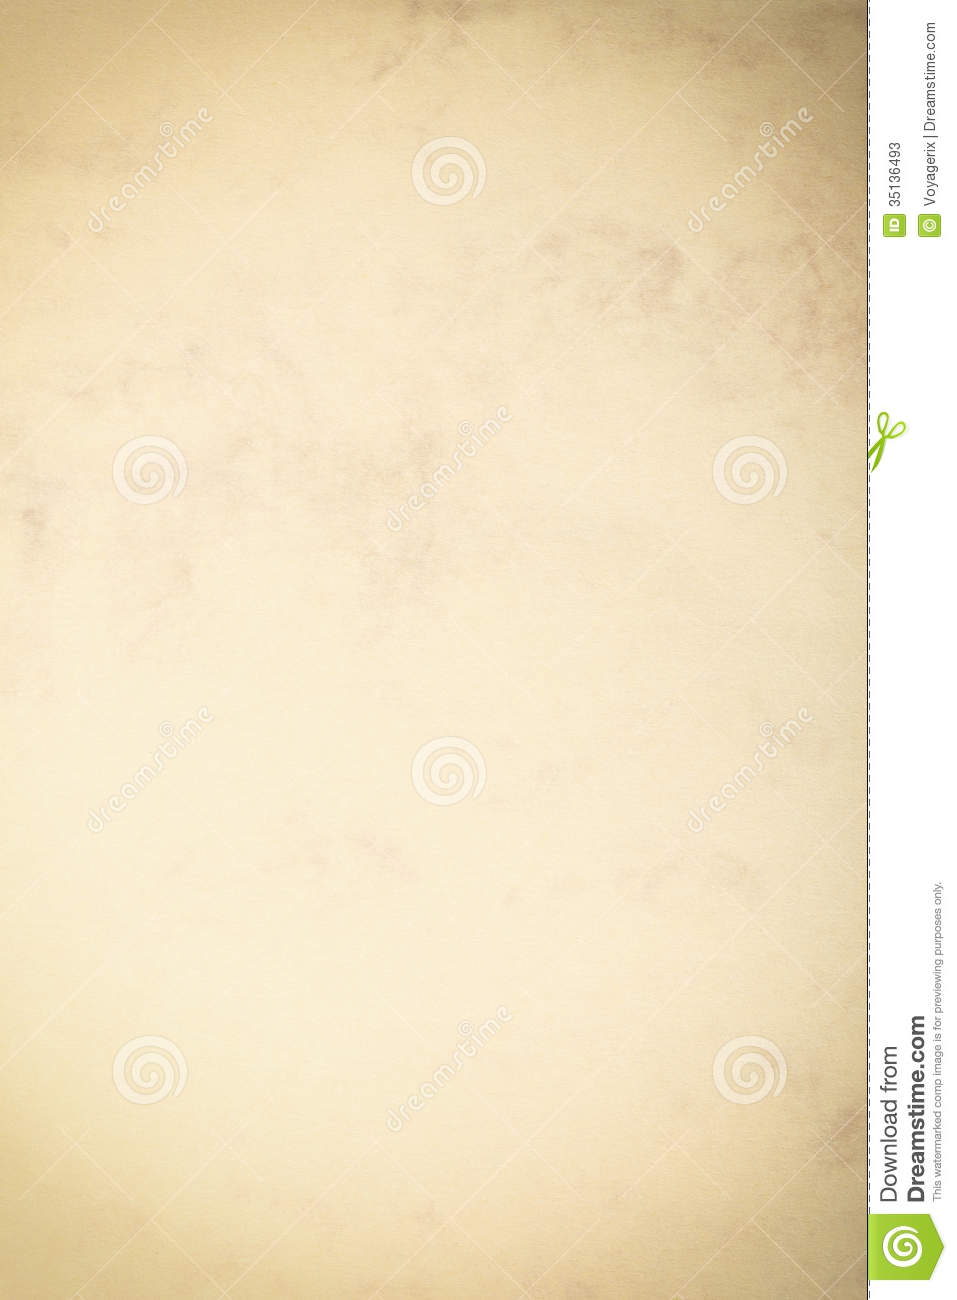 Vintage Paper Texture Abstract Background Stock Photos